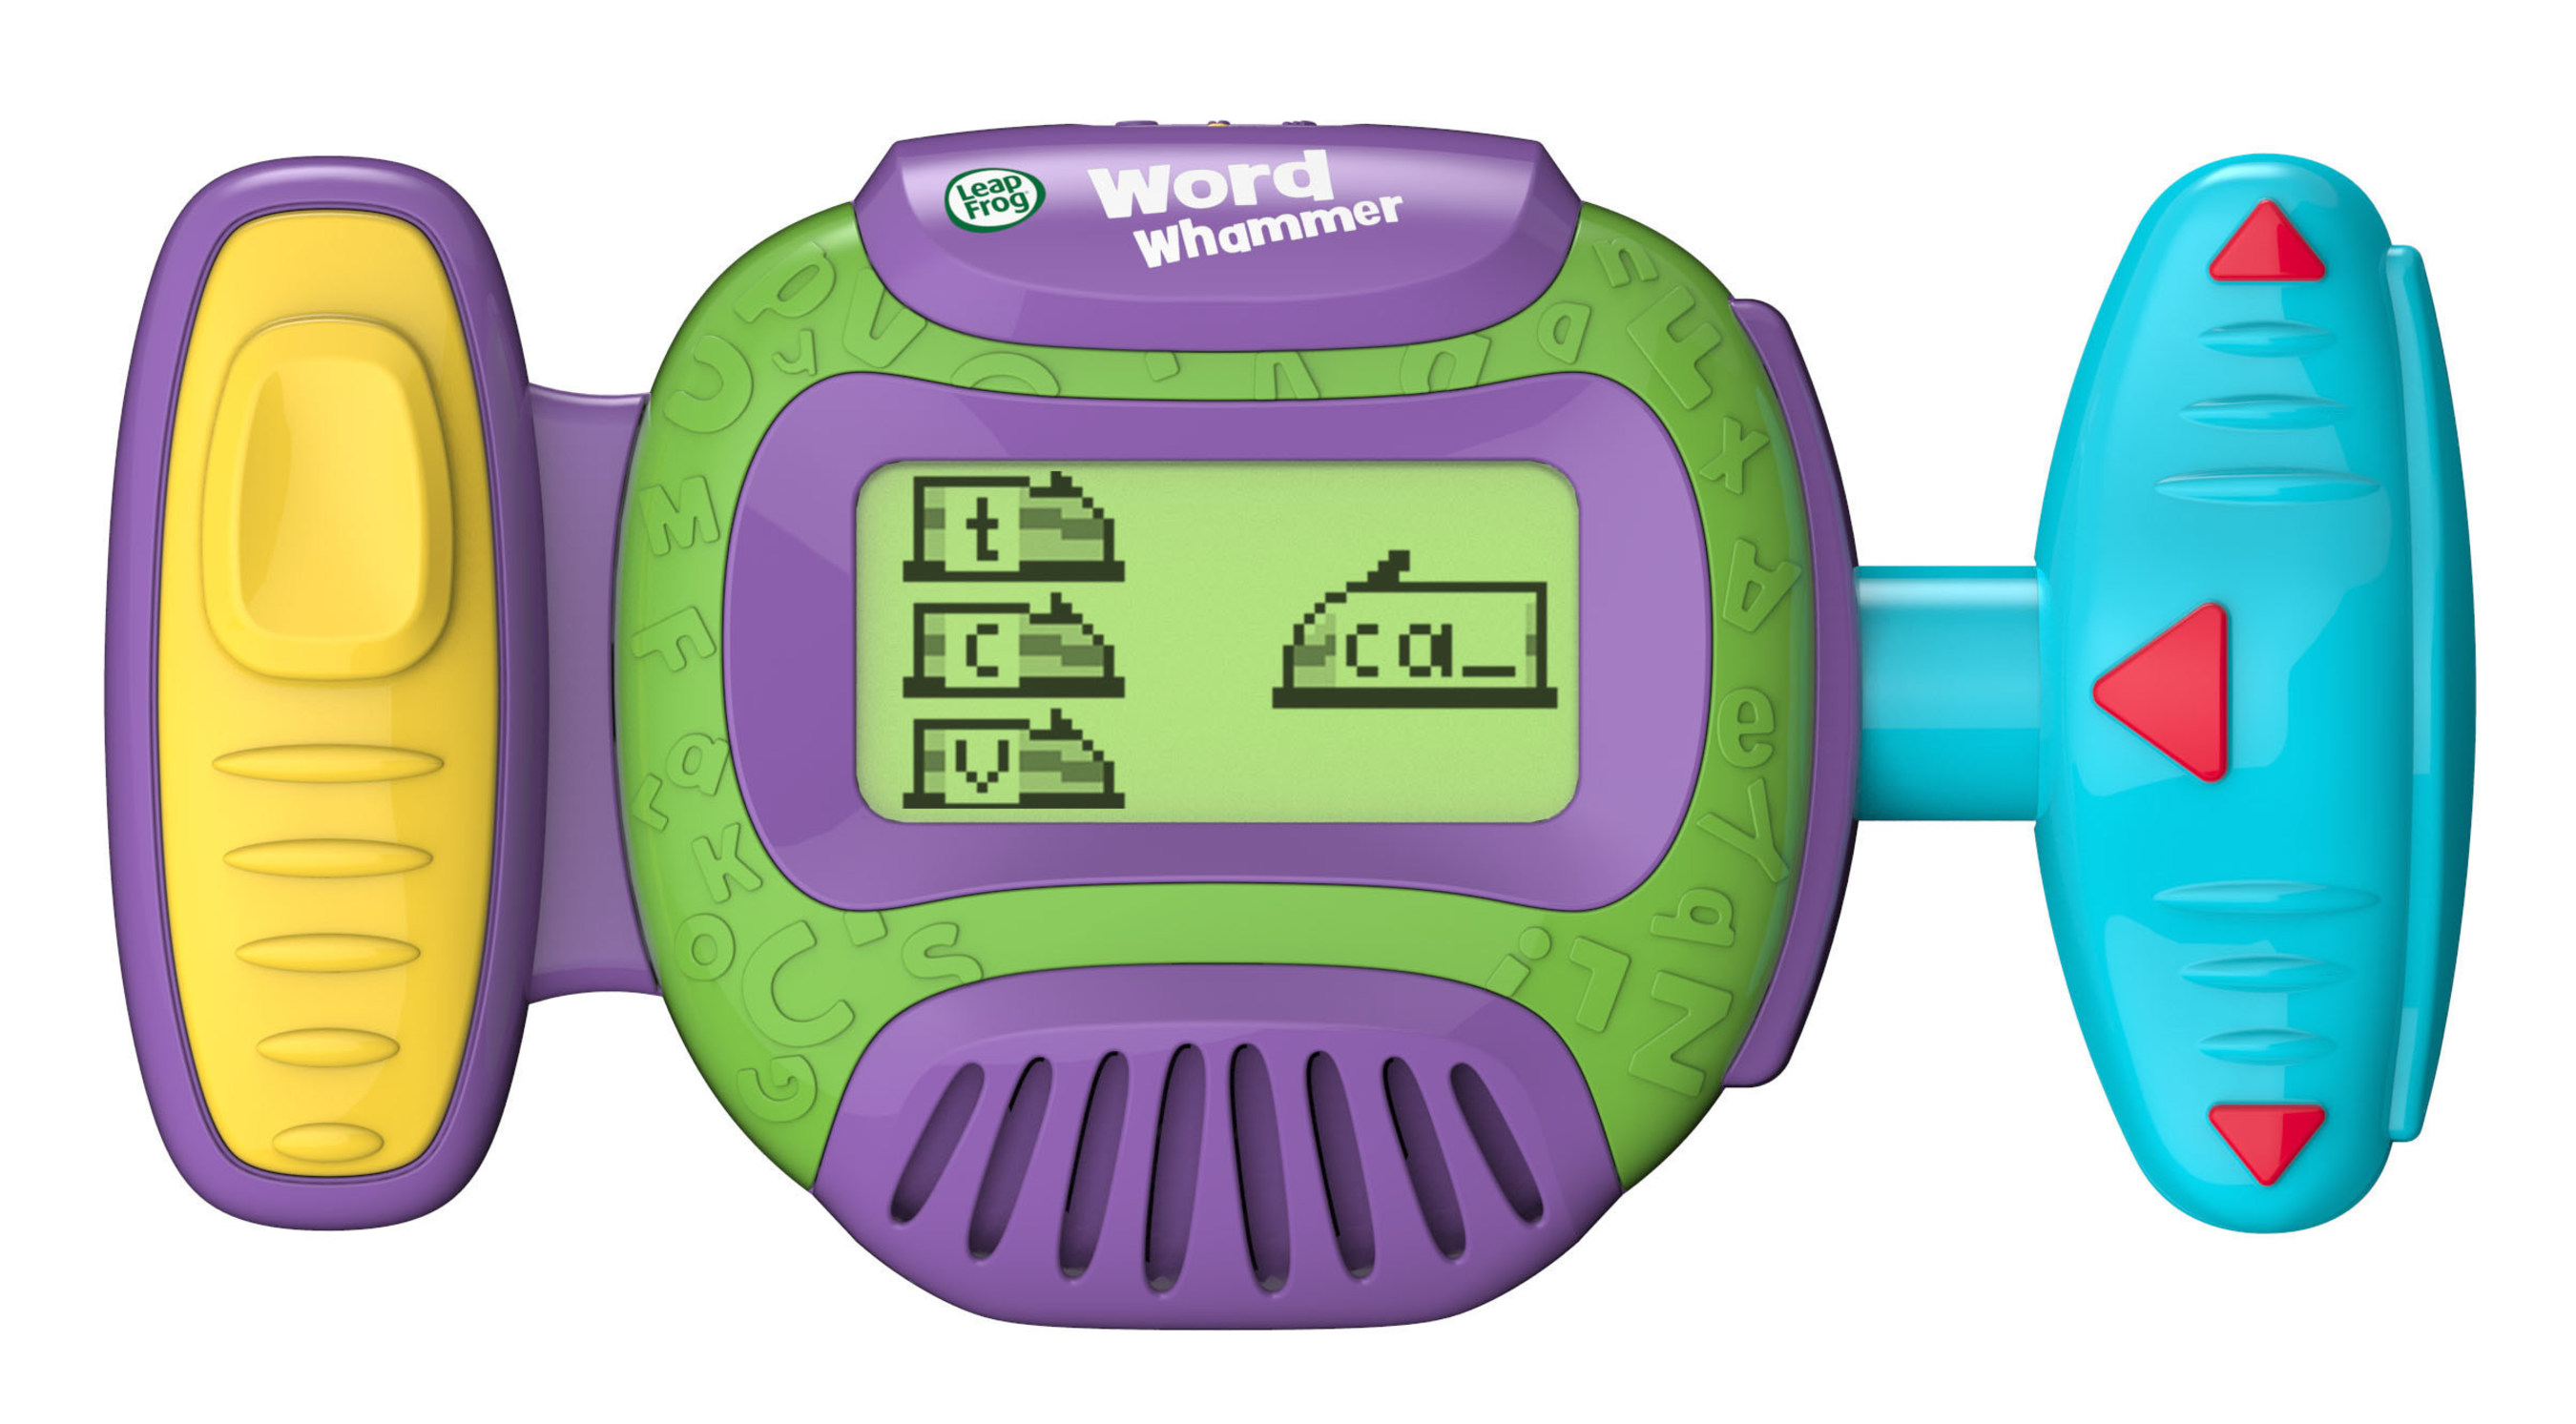 Build Words and Jam on Phonics Skills with Word Whammer.